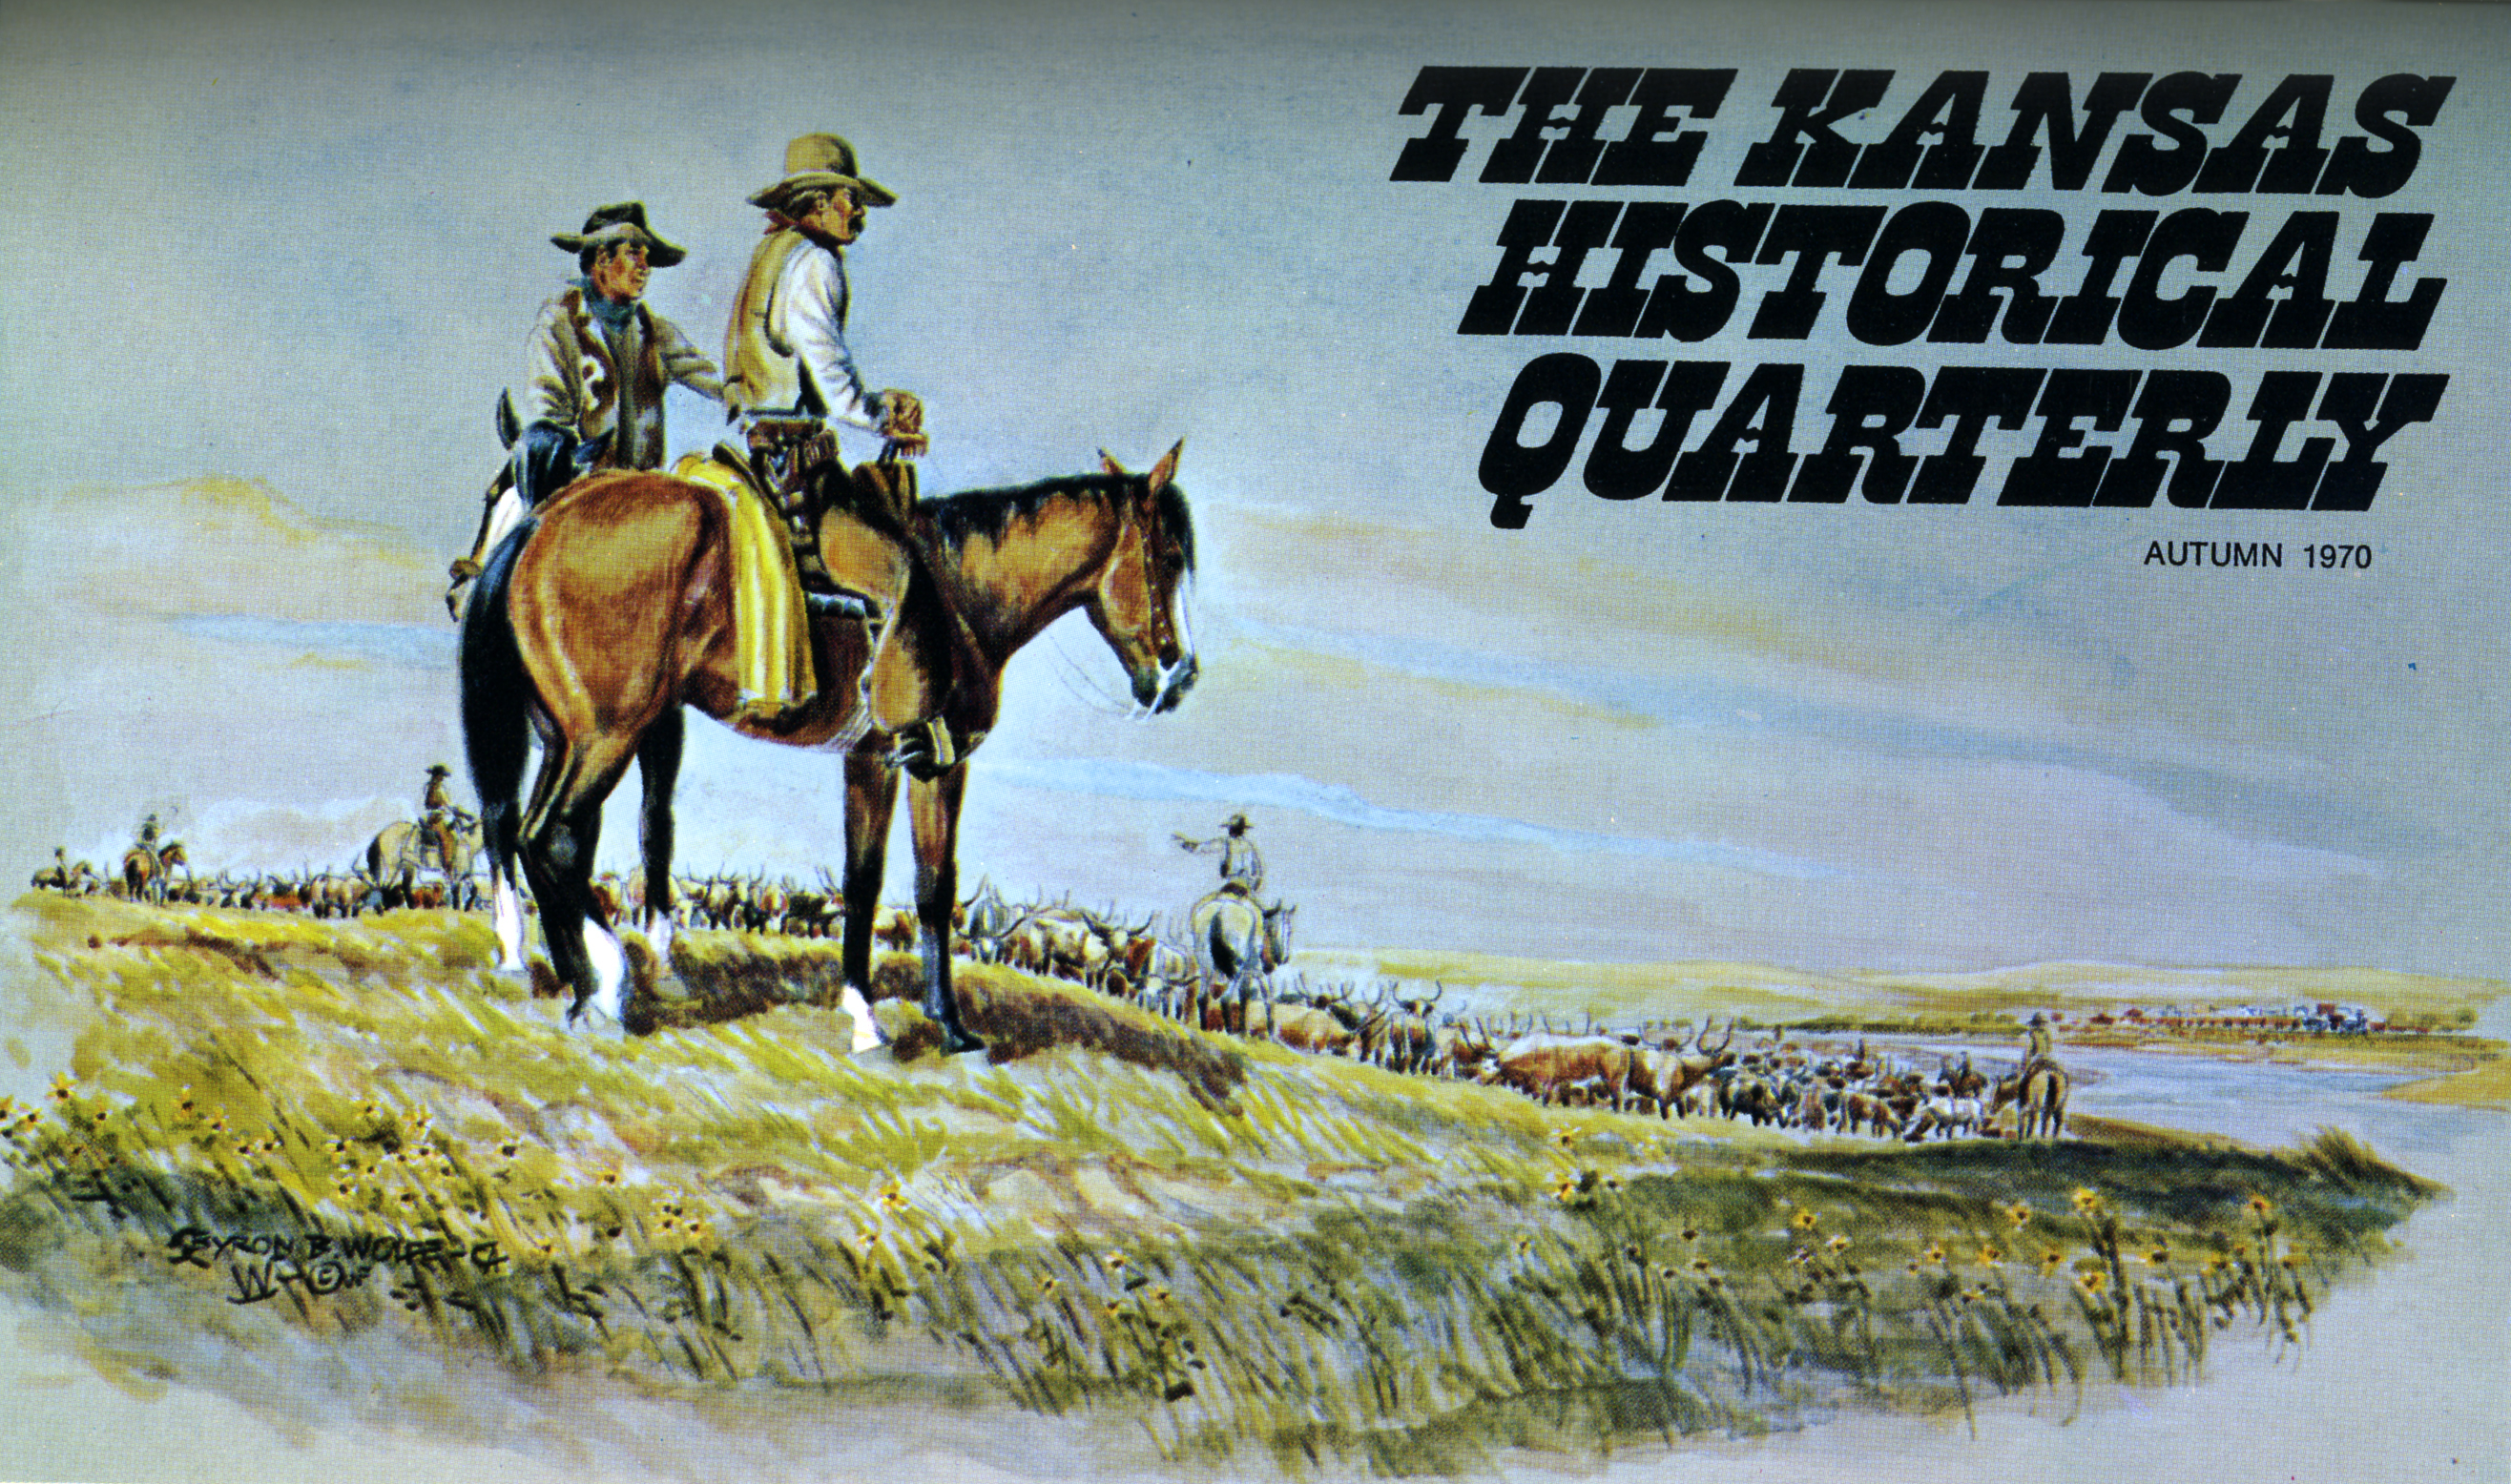 Kansas Historical Quarterly, Autumn 1970